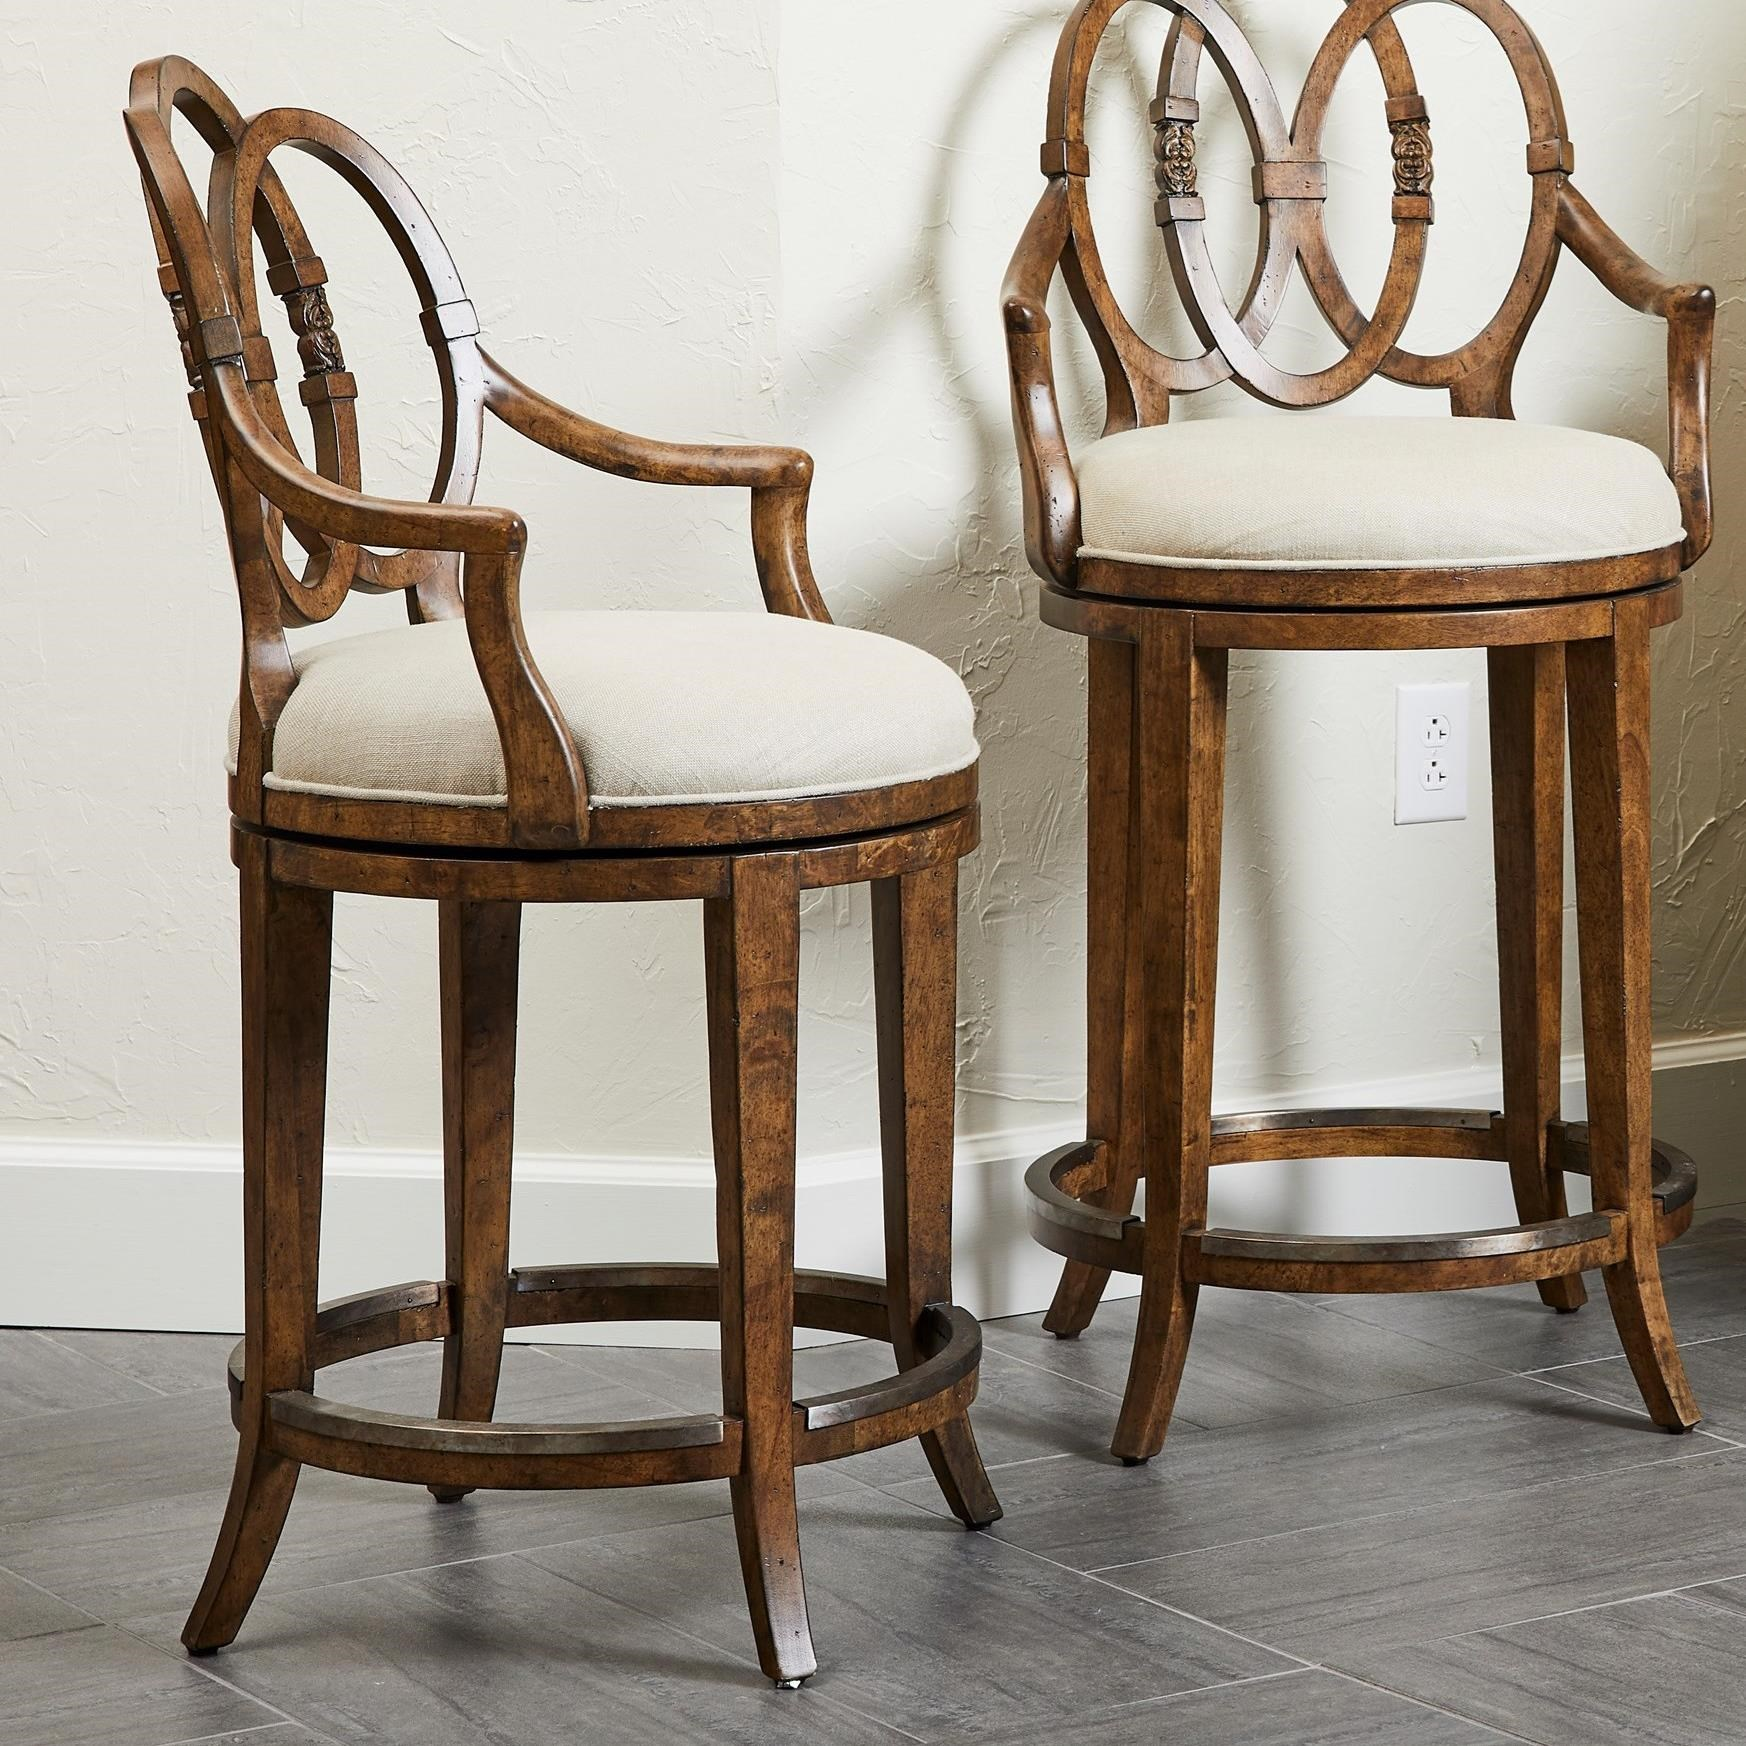 Thoroughbred Whirlaway Counter Stool by Stanley Furniture at Alison Craig Home Furnishings